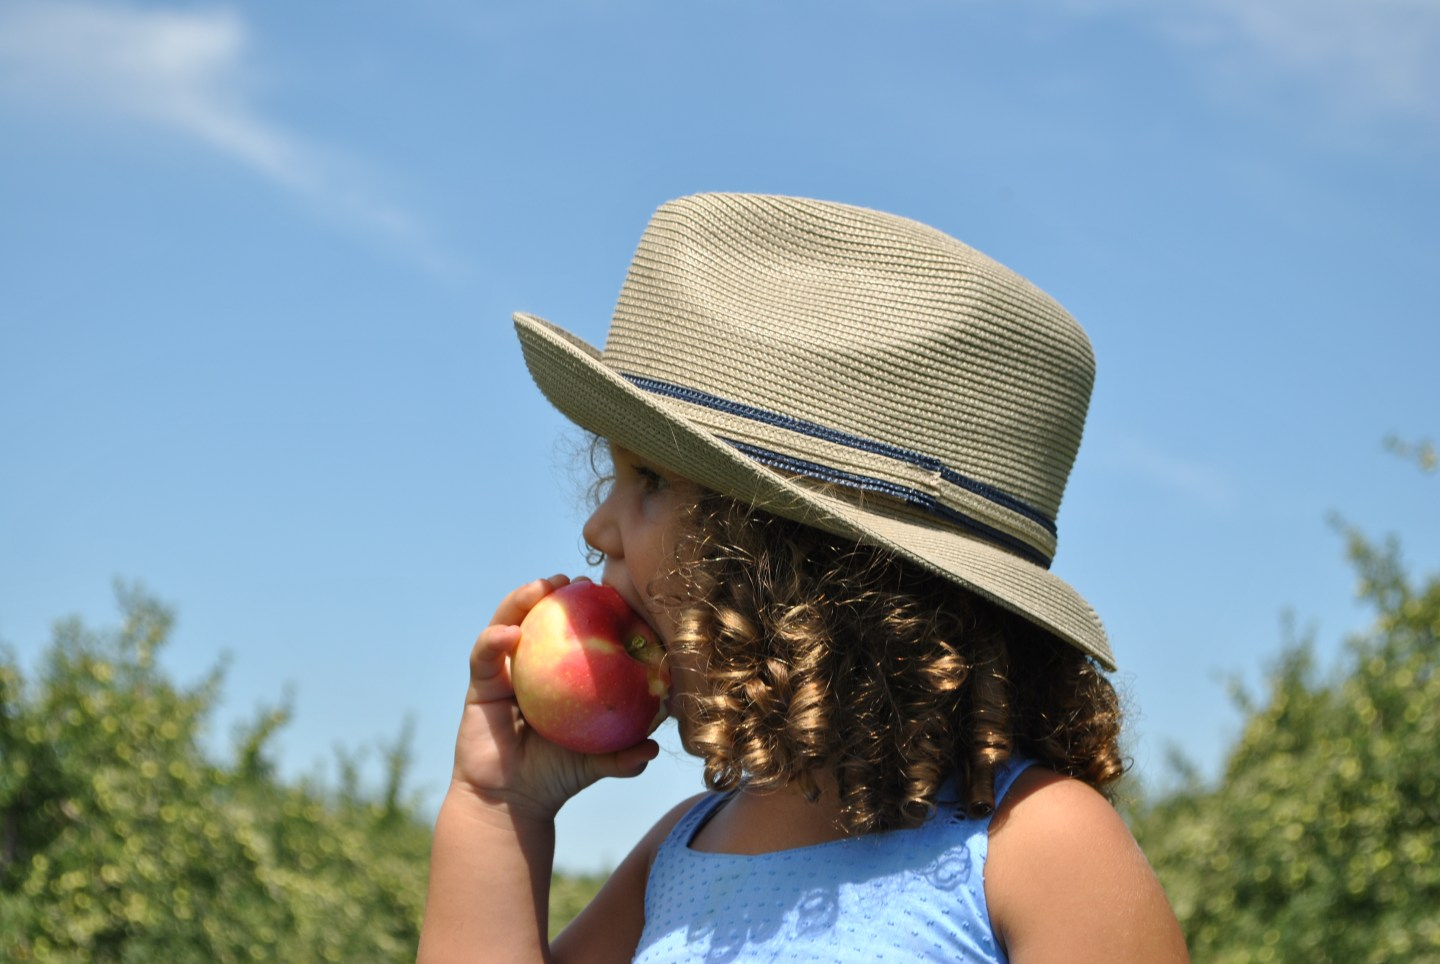 The Best Connecticut Farms for Apple and Pumpkin Picking